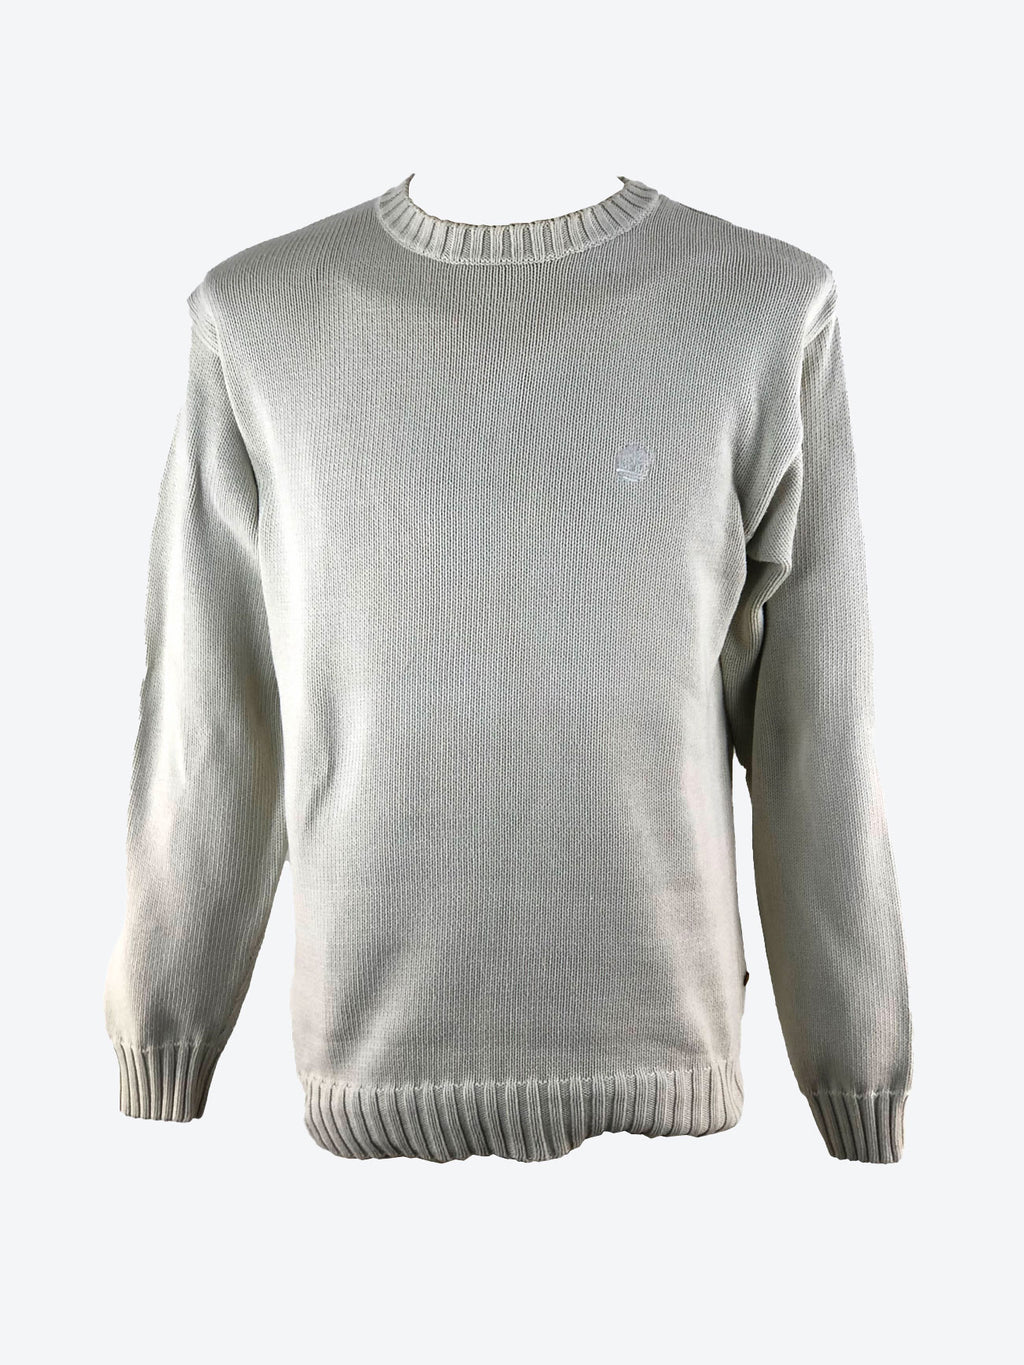 Pull Homme d'occasion TIMBERLAND - Taille : 36 - S